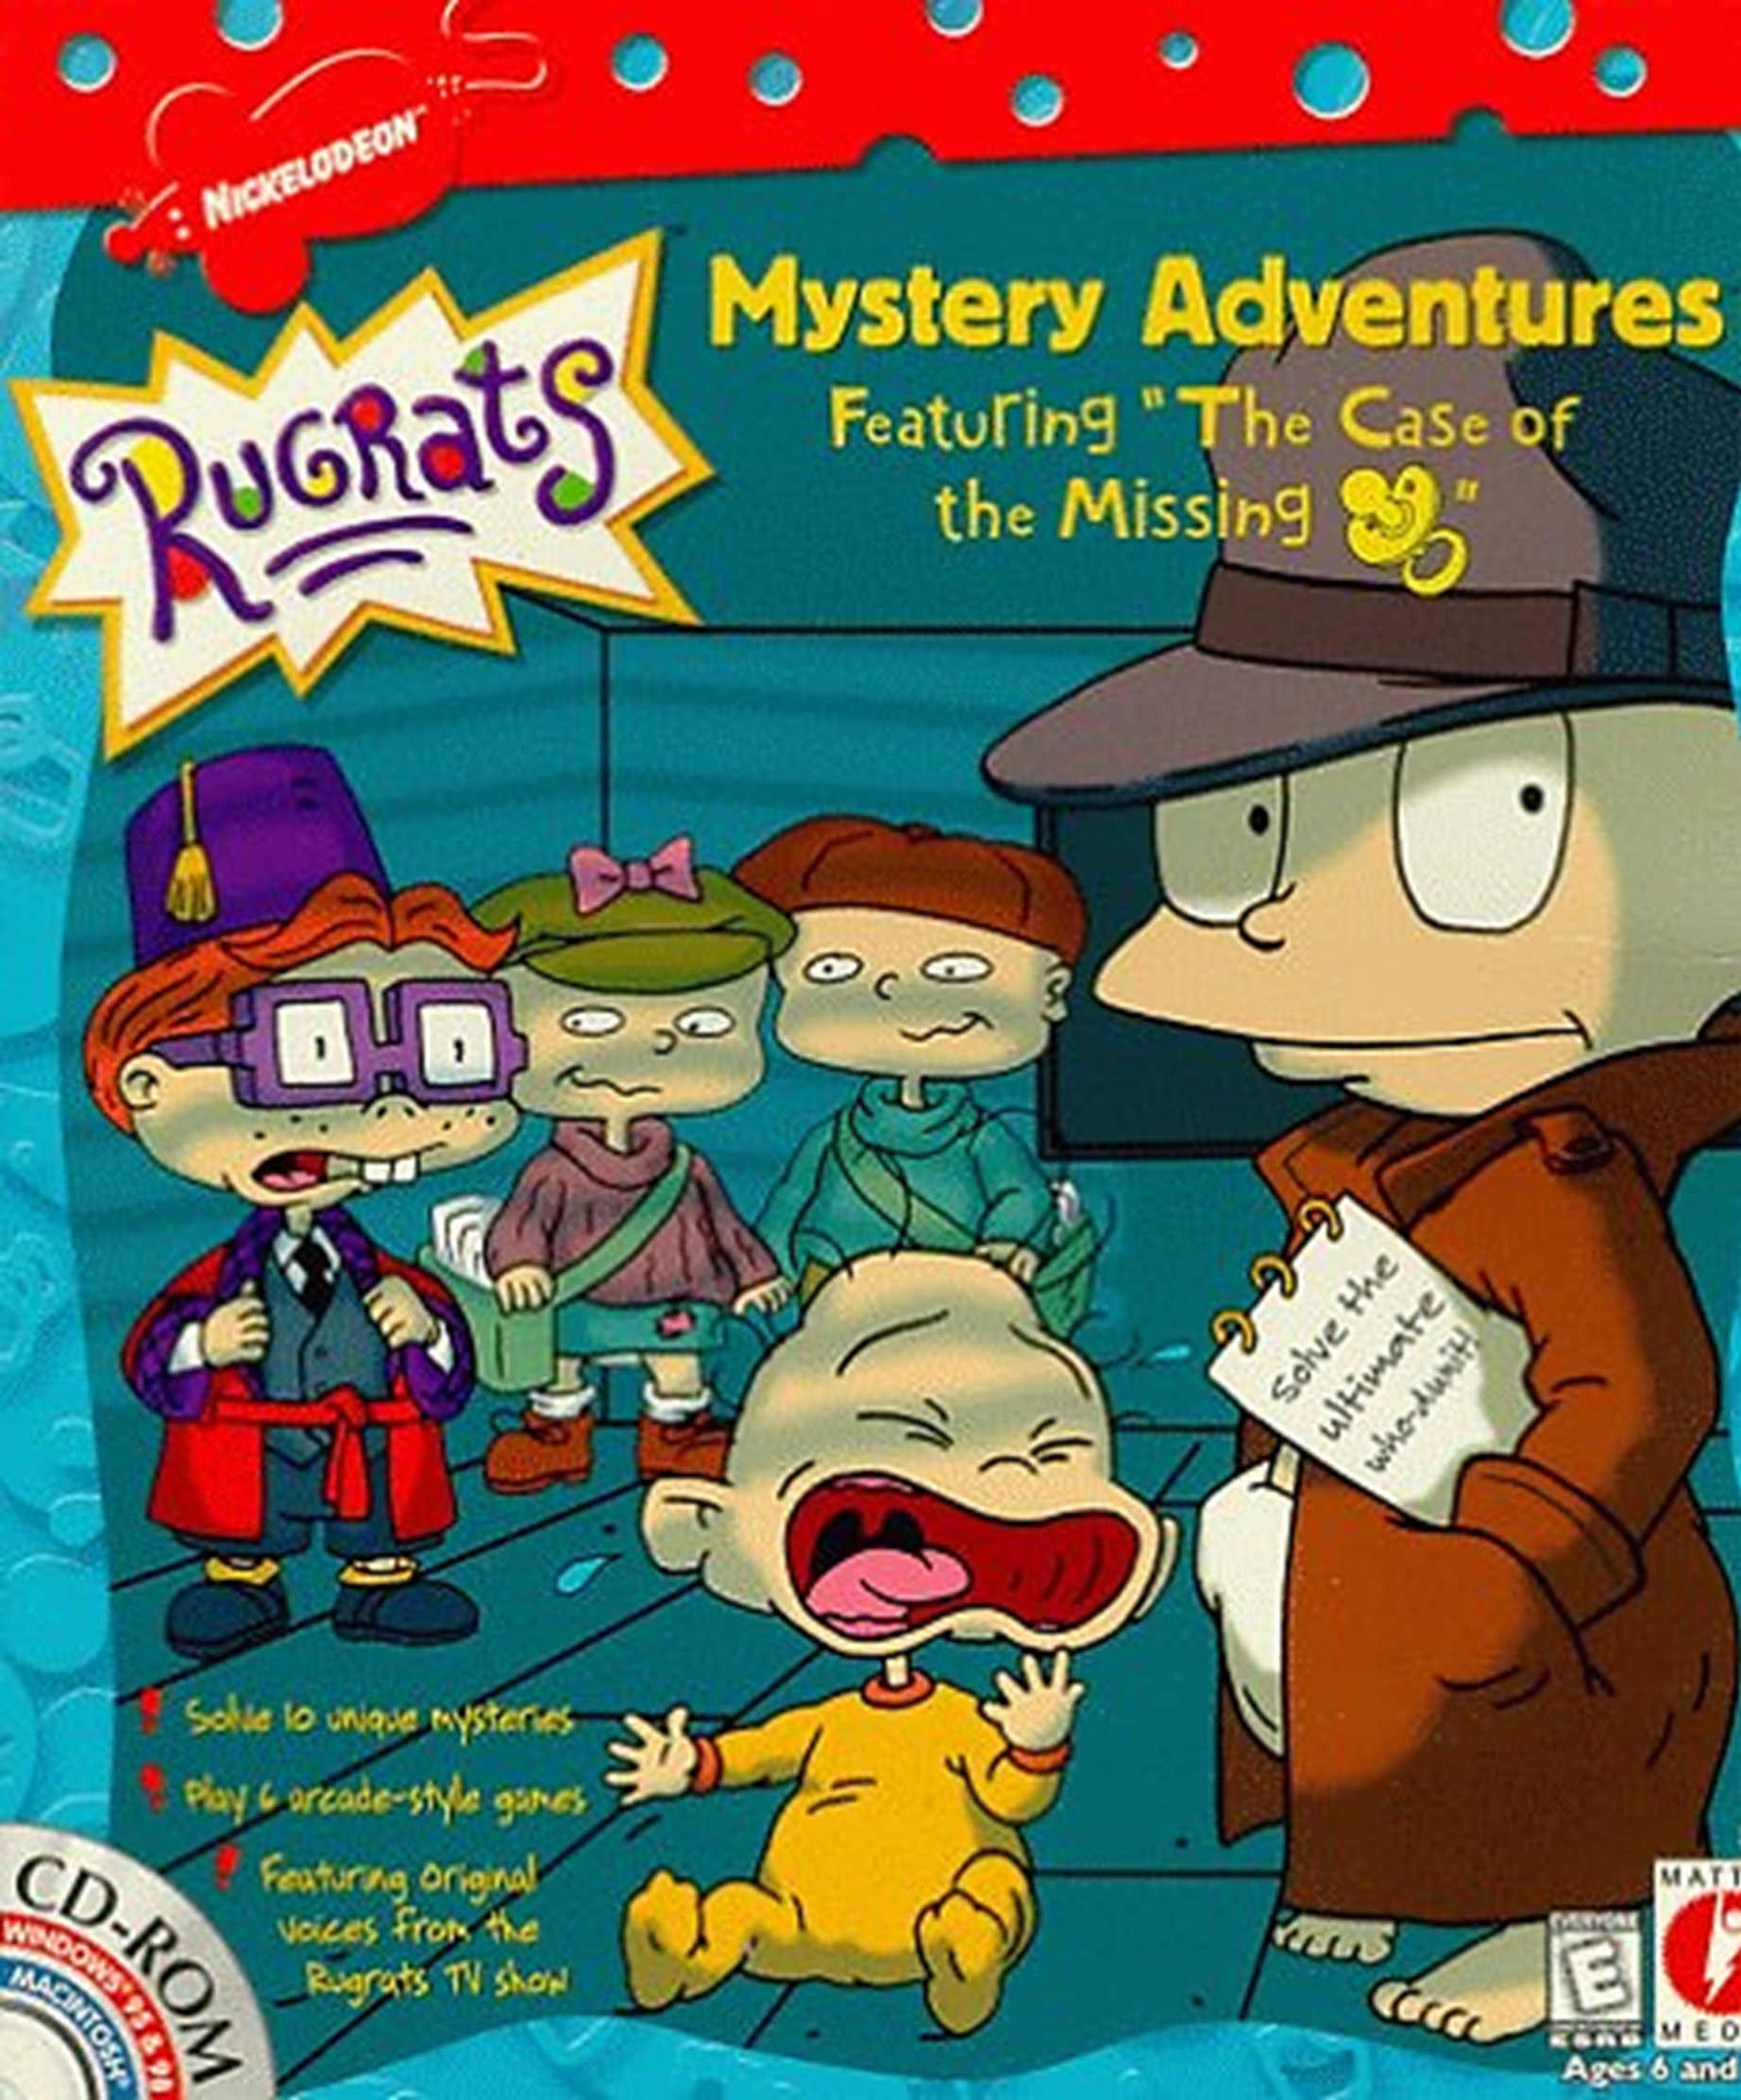 Rugrats Mystery Adventures/Gallery